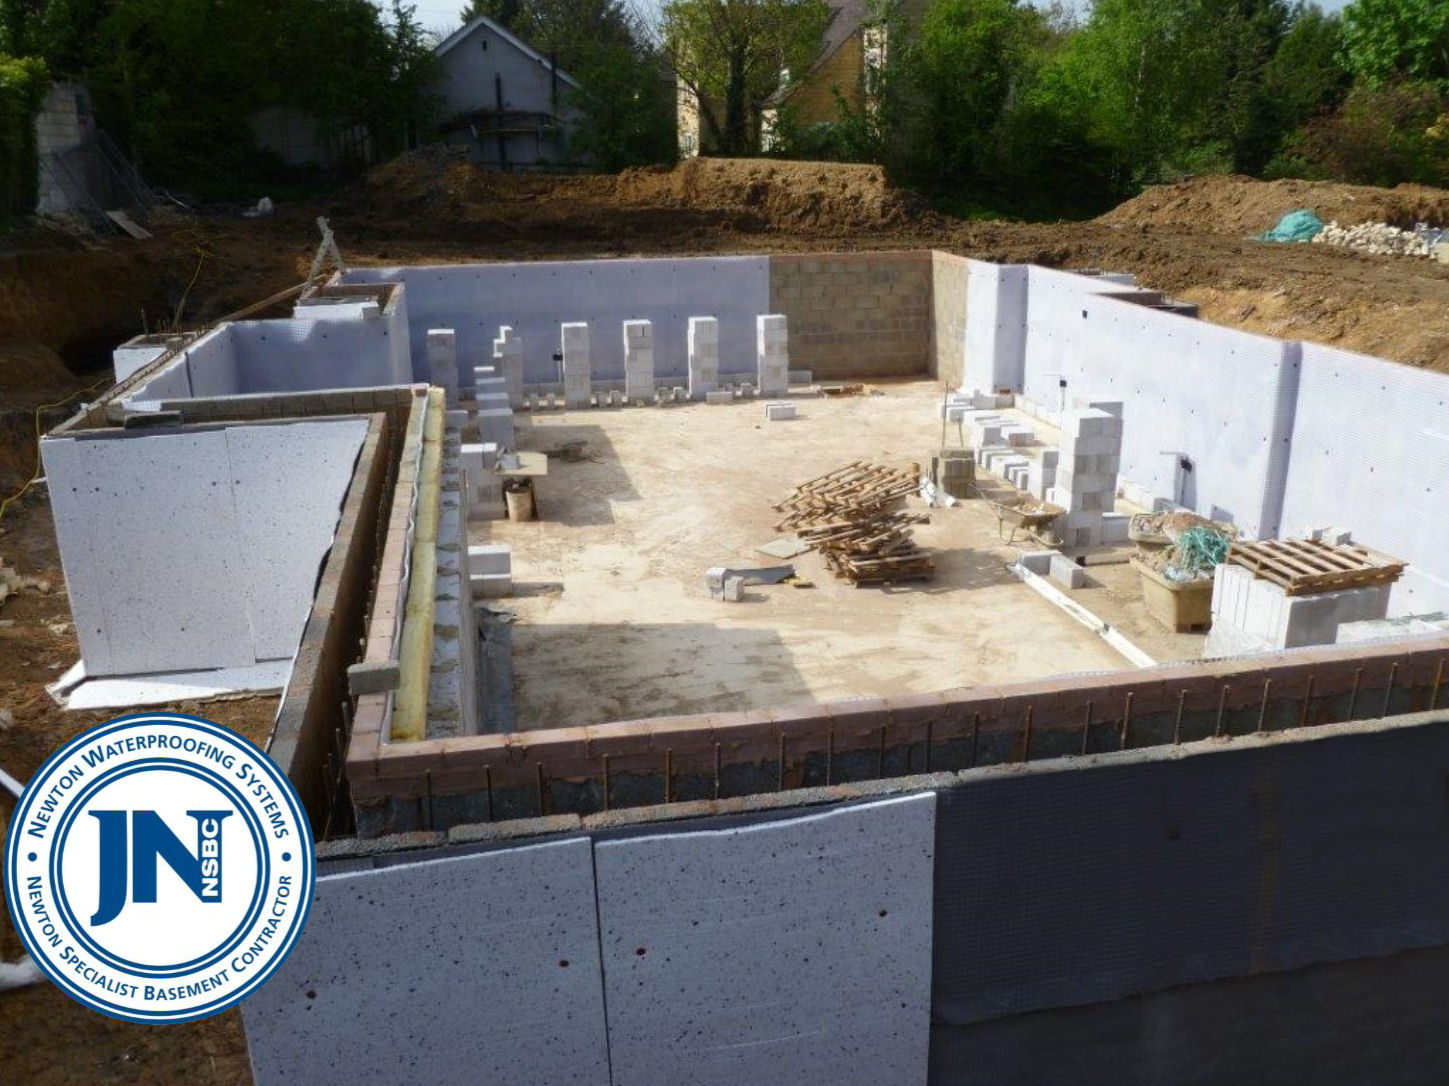 Newton Specialist Basement Contractor